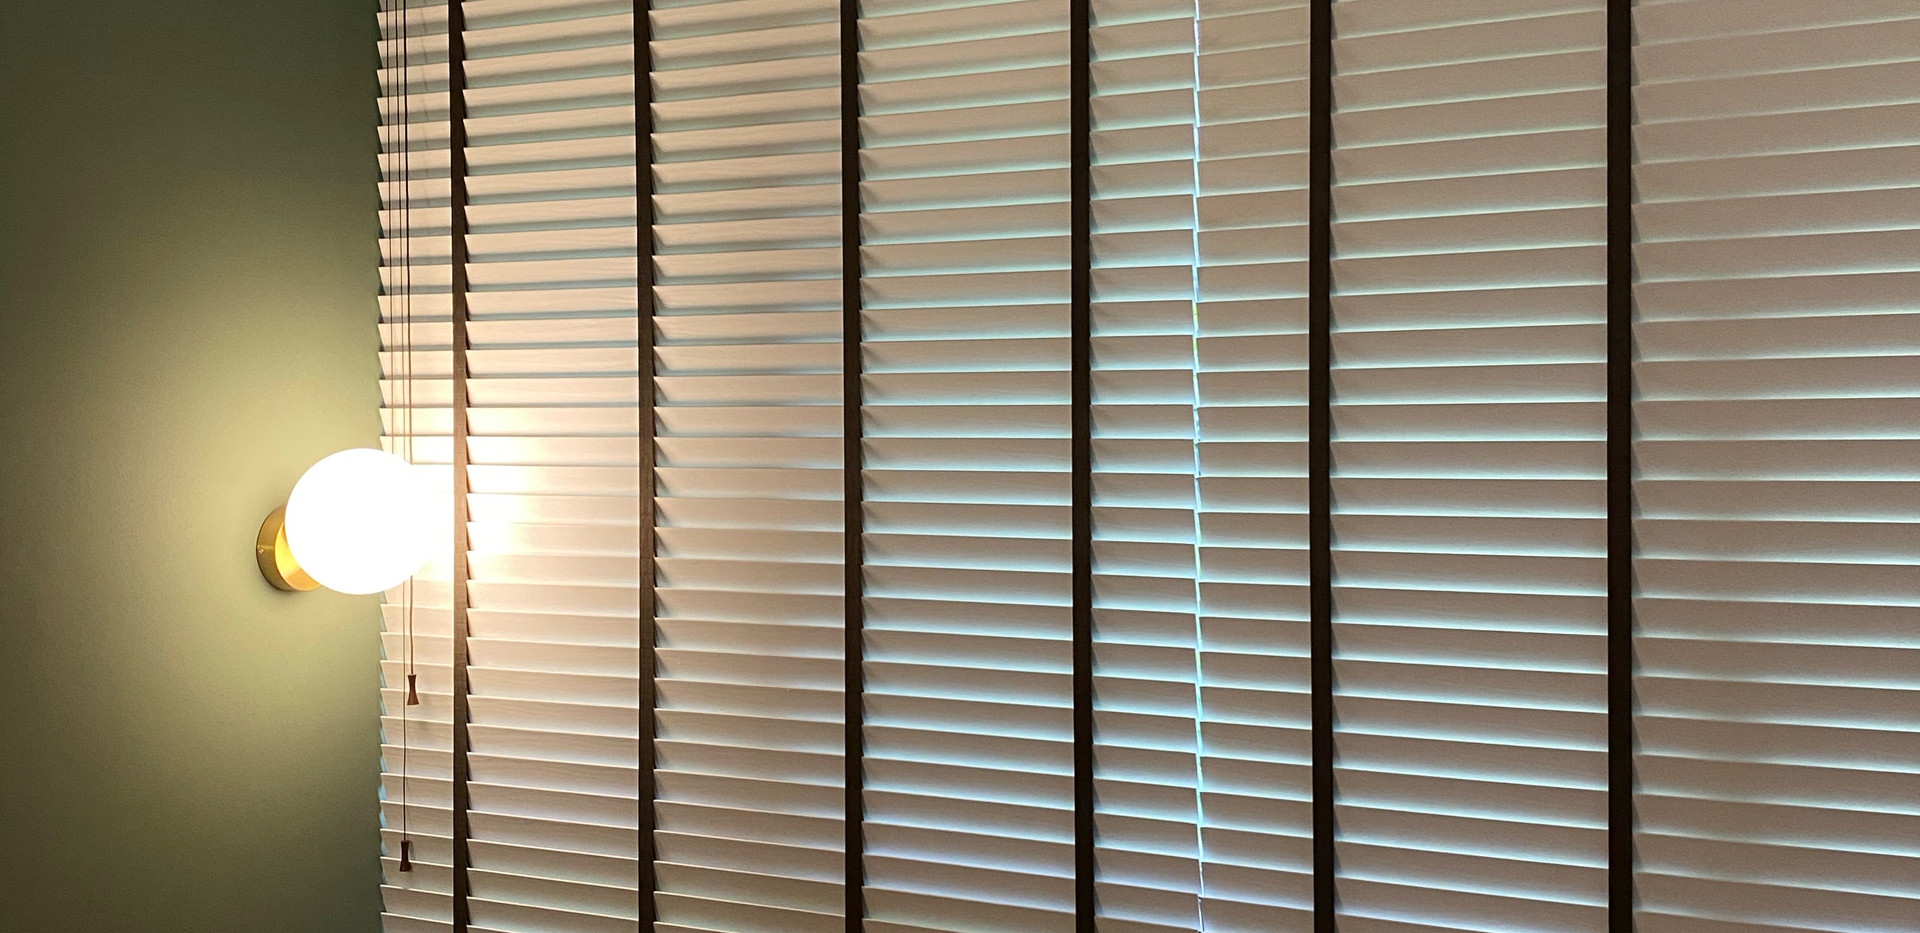 White Venetian Blinds with Brown Tape - END CURTAIN Singapore